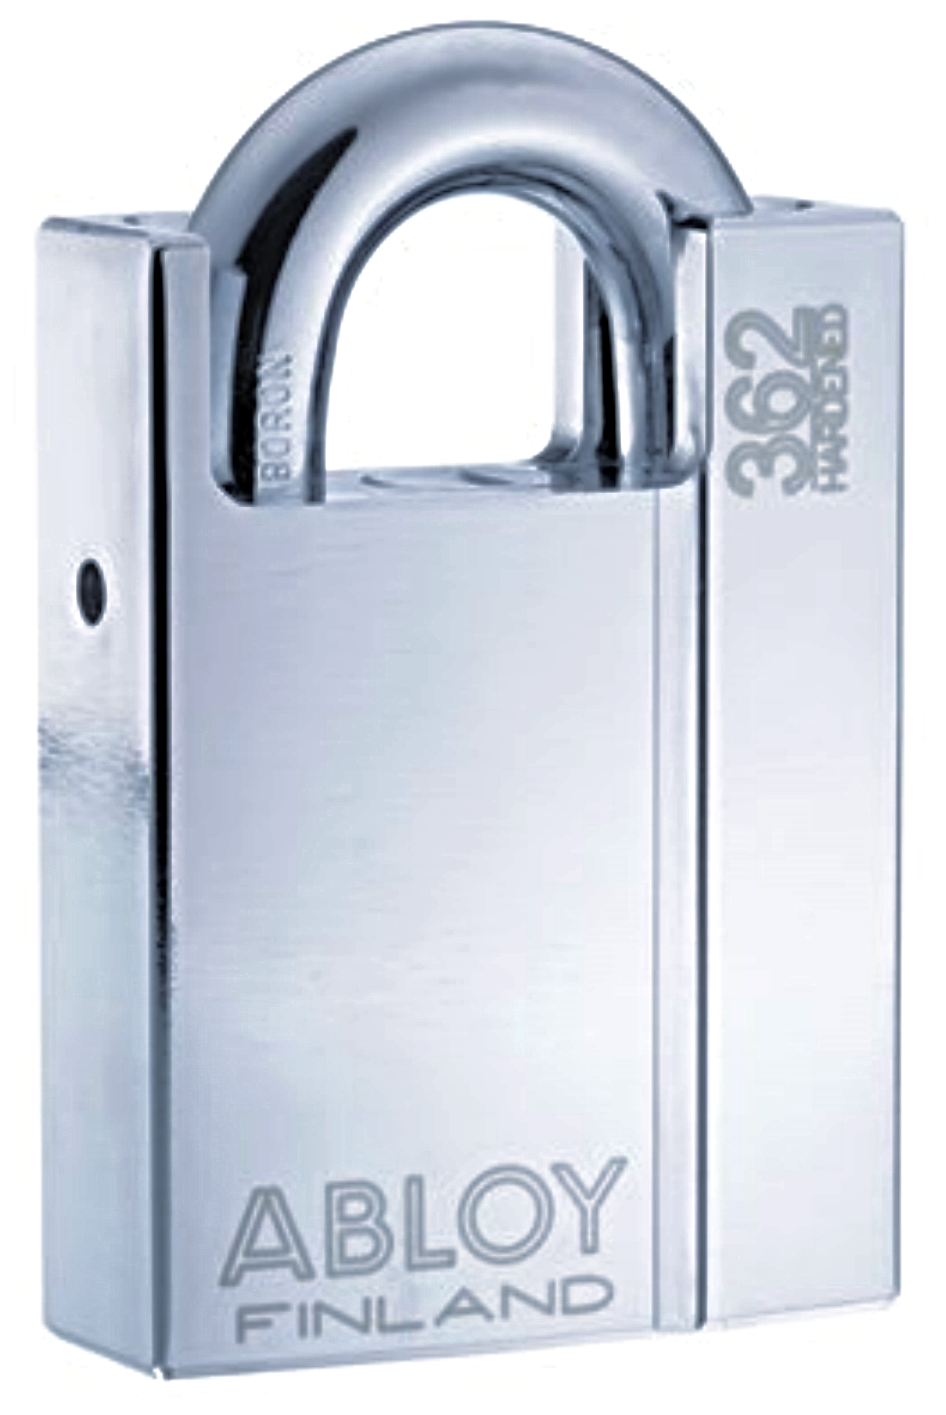 abloy pl362 padlocks in stock only 158 00 in stock lowest uk